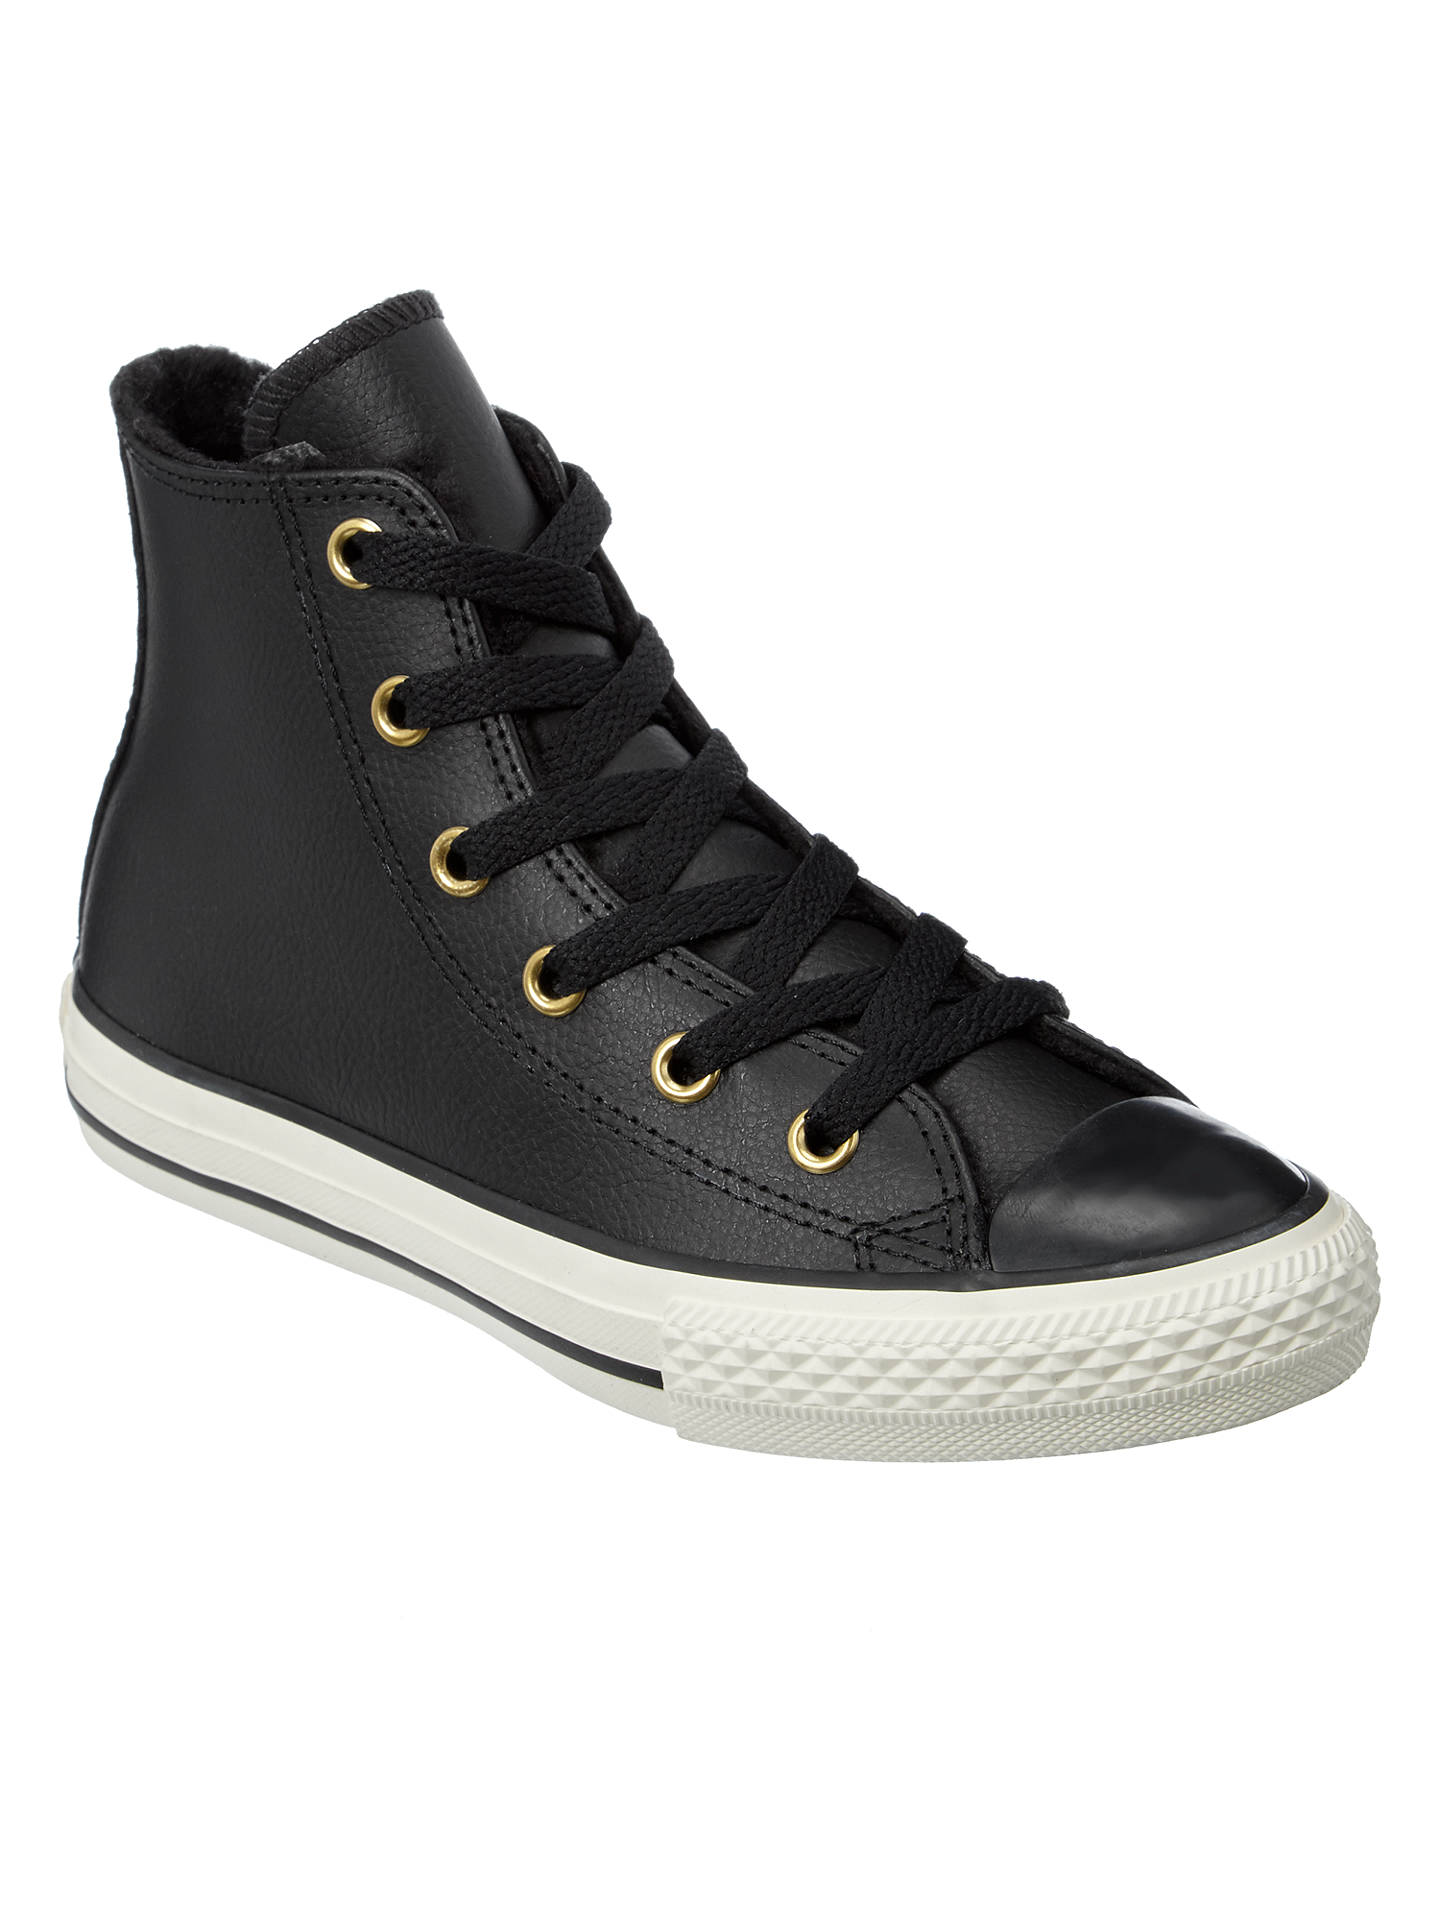 8ecd85e3c68 Converse Chuck Taylor All Star Leather Hi-Top Trainers at John Lewis ...